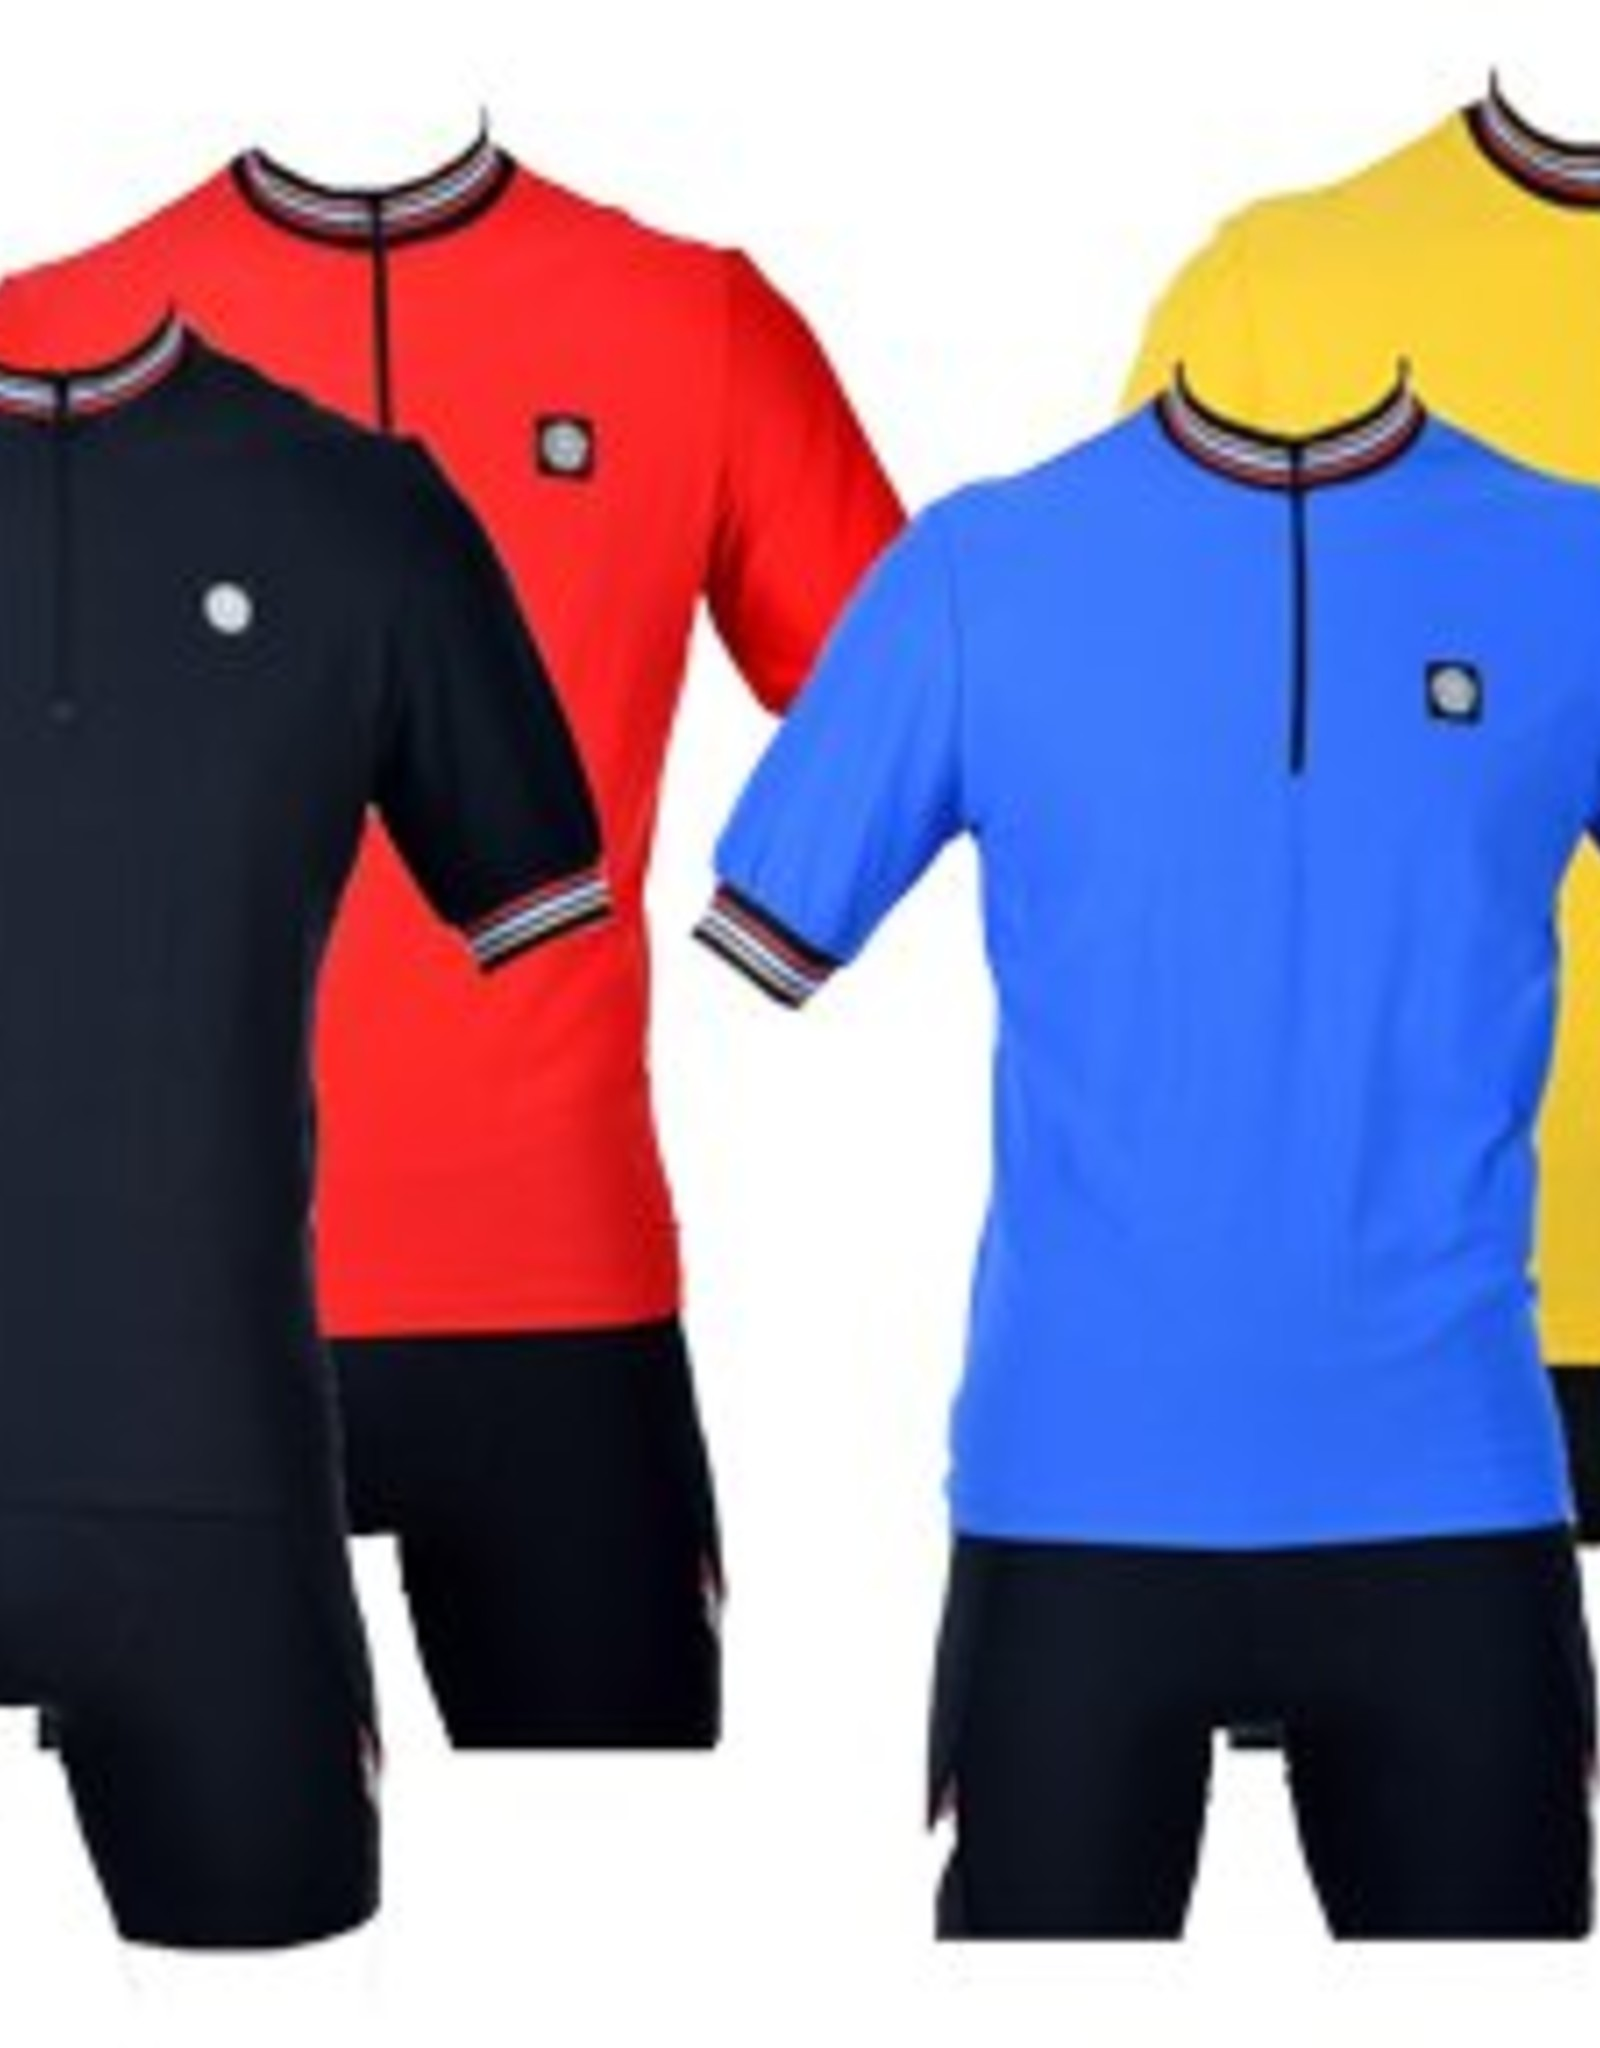 Tudor TS555 Short Sleeved Road Jersey